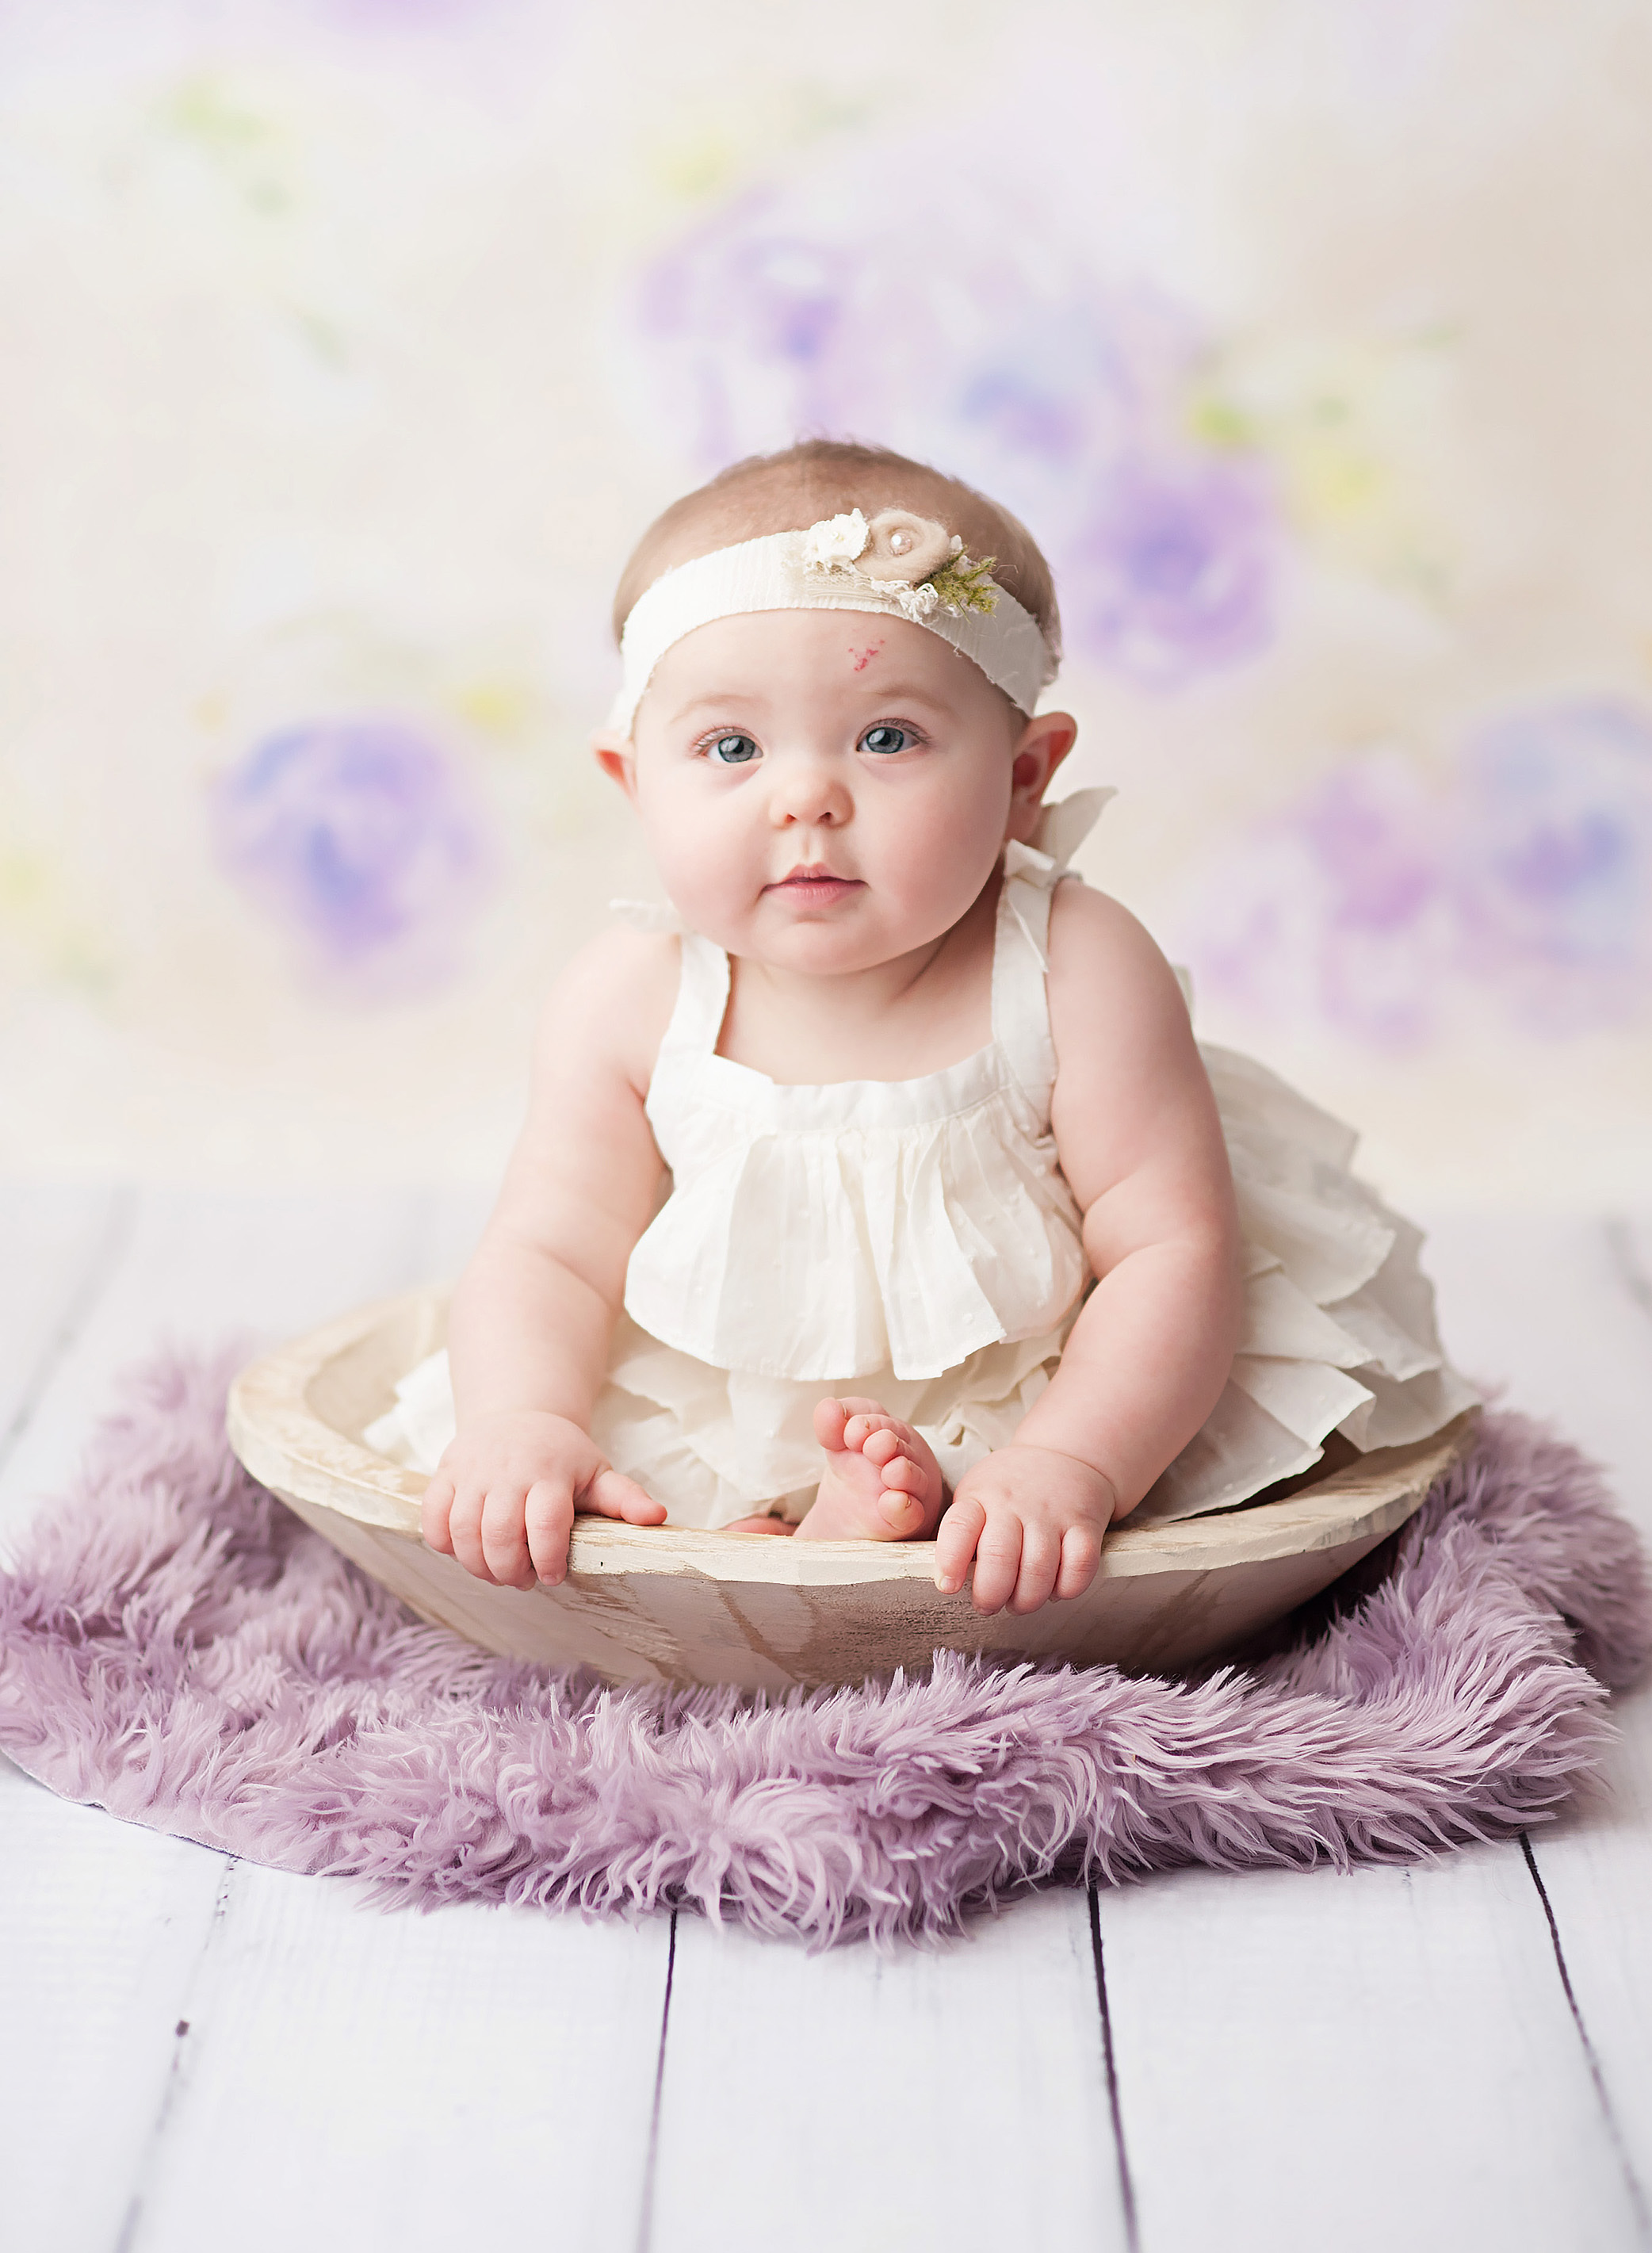 6 month old girl against purple floral bacdrop